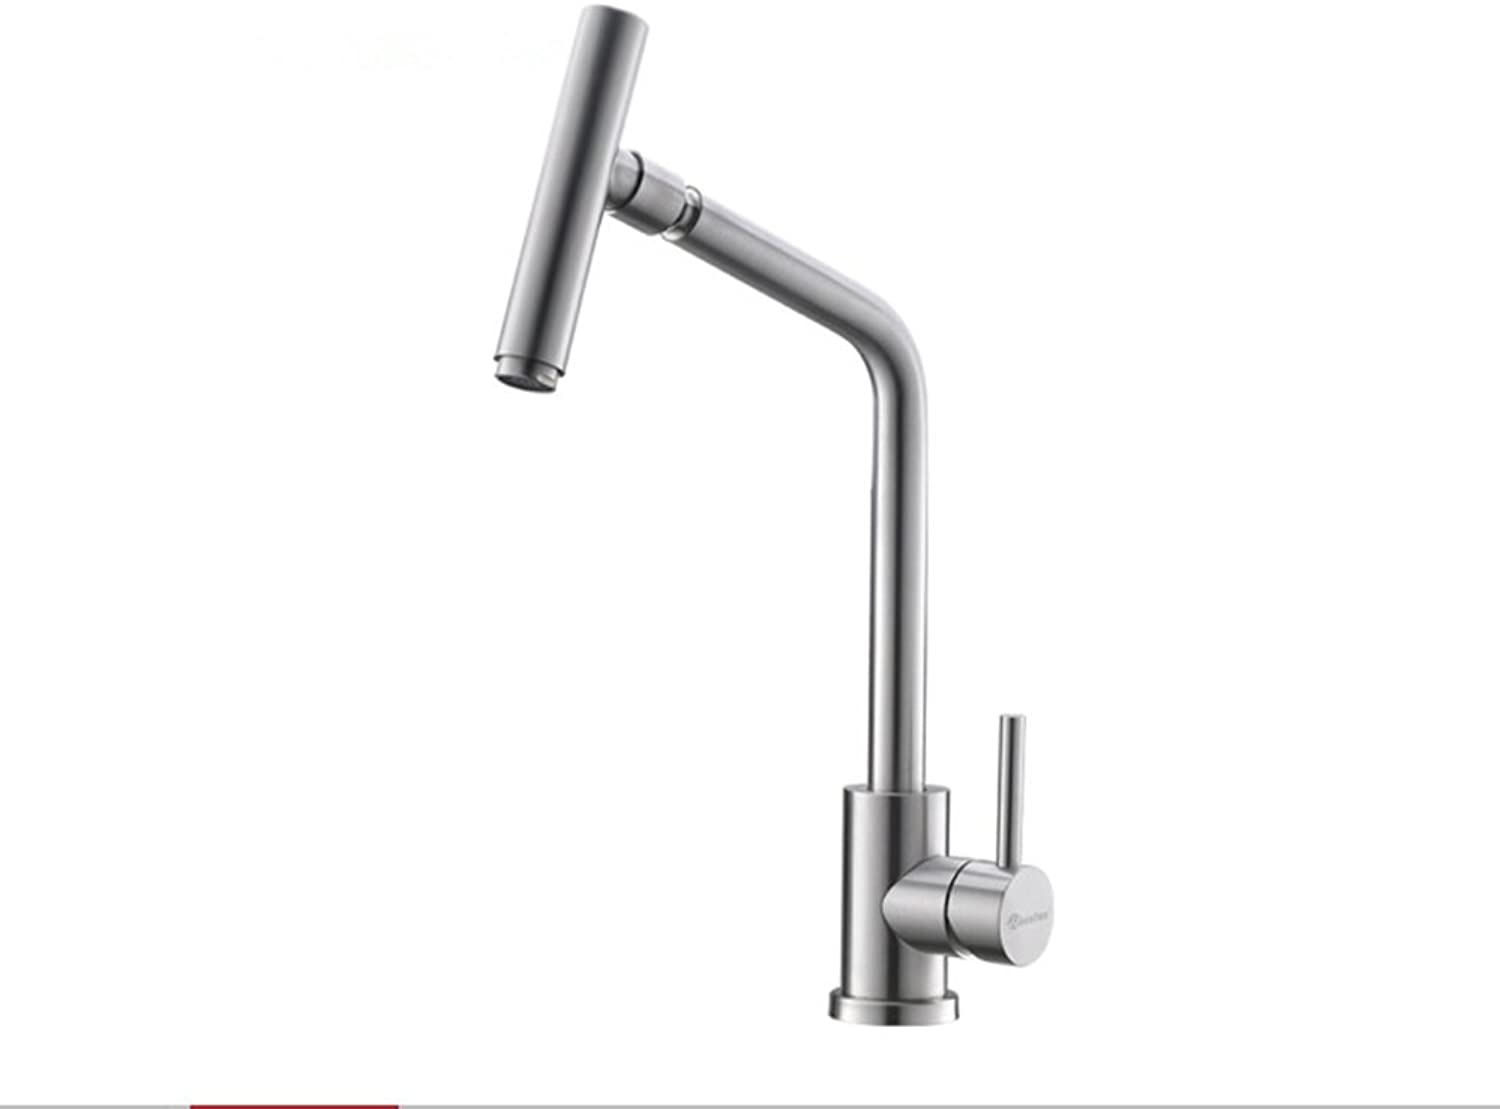 Kitchen Faucets redating Water 360 Degree Faucet Hot & Cold Water Kitchen Sink Faucet SUS304 Stainless Steel Brushed Nickel